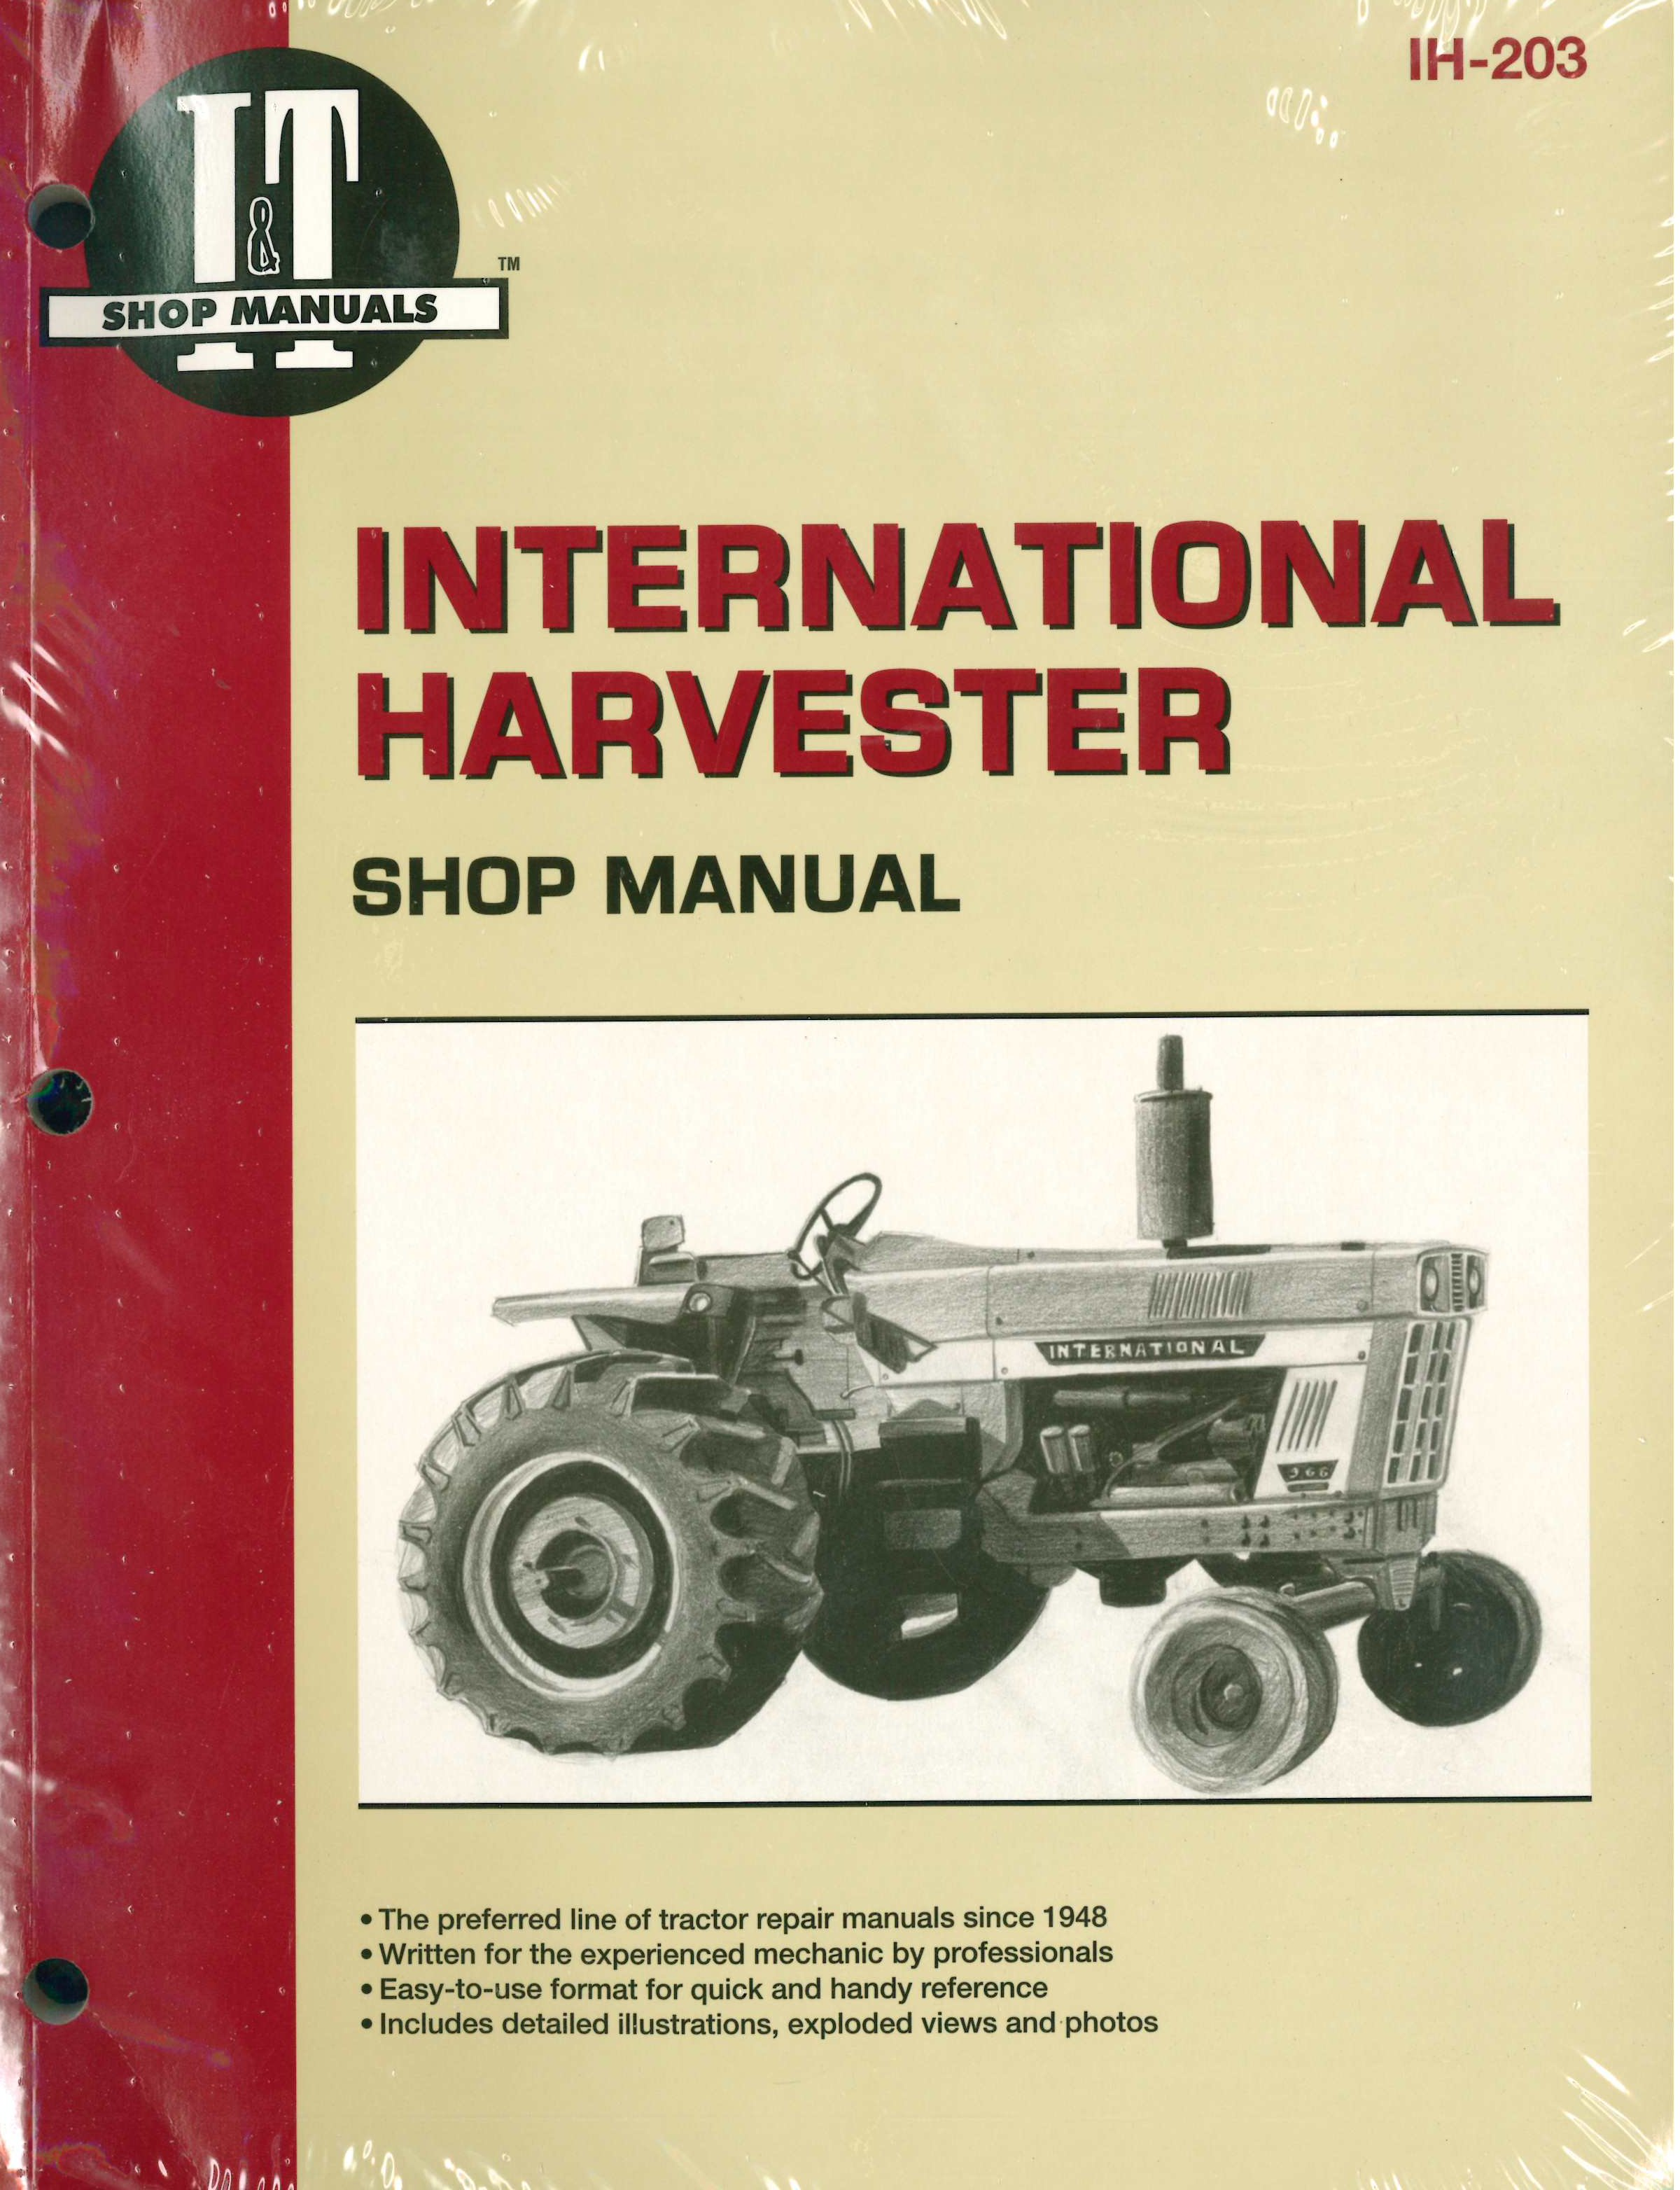 international harvester tractor service manual 454 464 484 574 584 rh repairmanual com simplicity tractor repair manual shenniu tractor repair manual